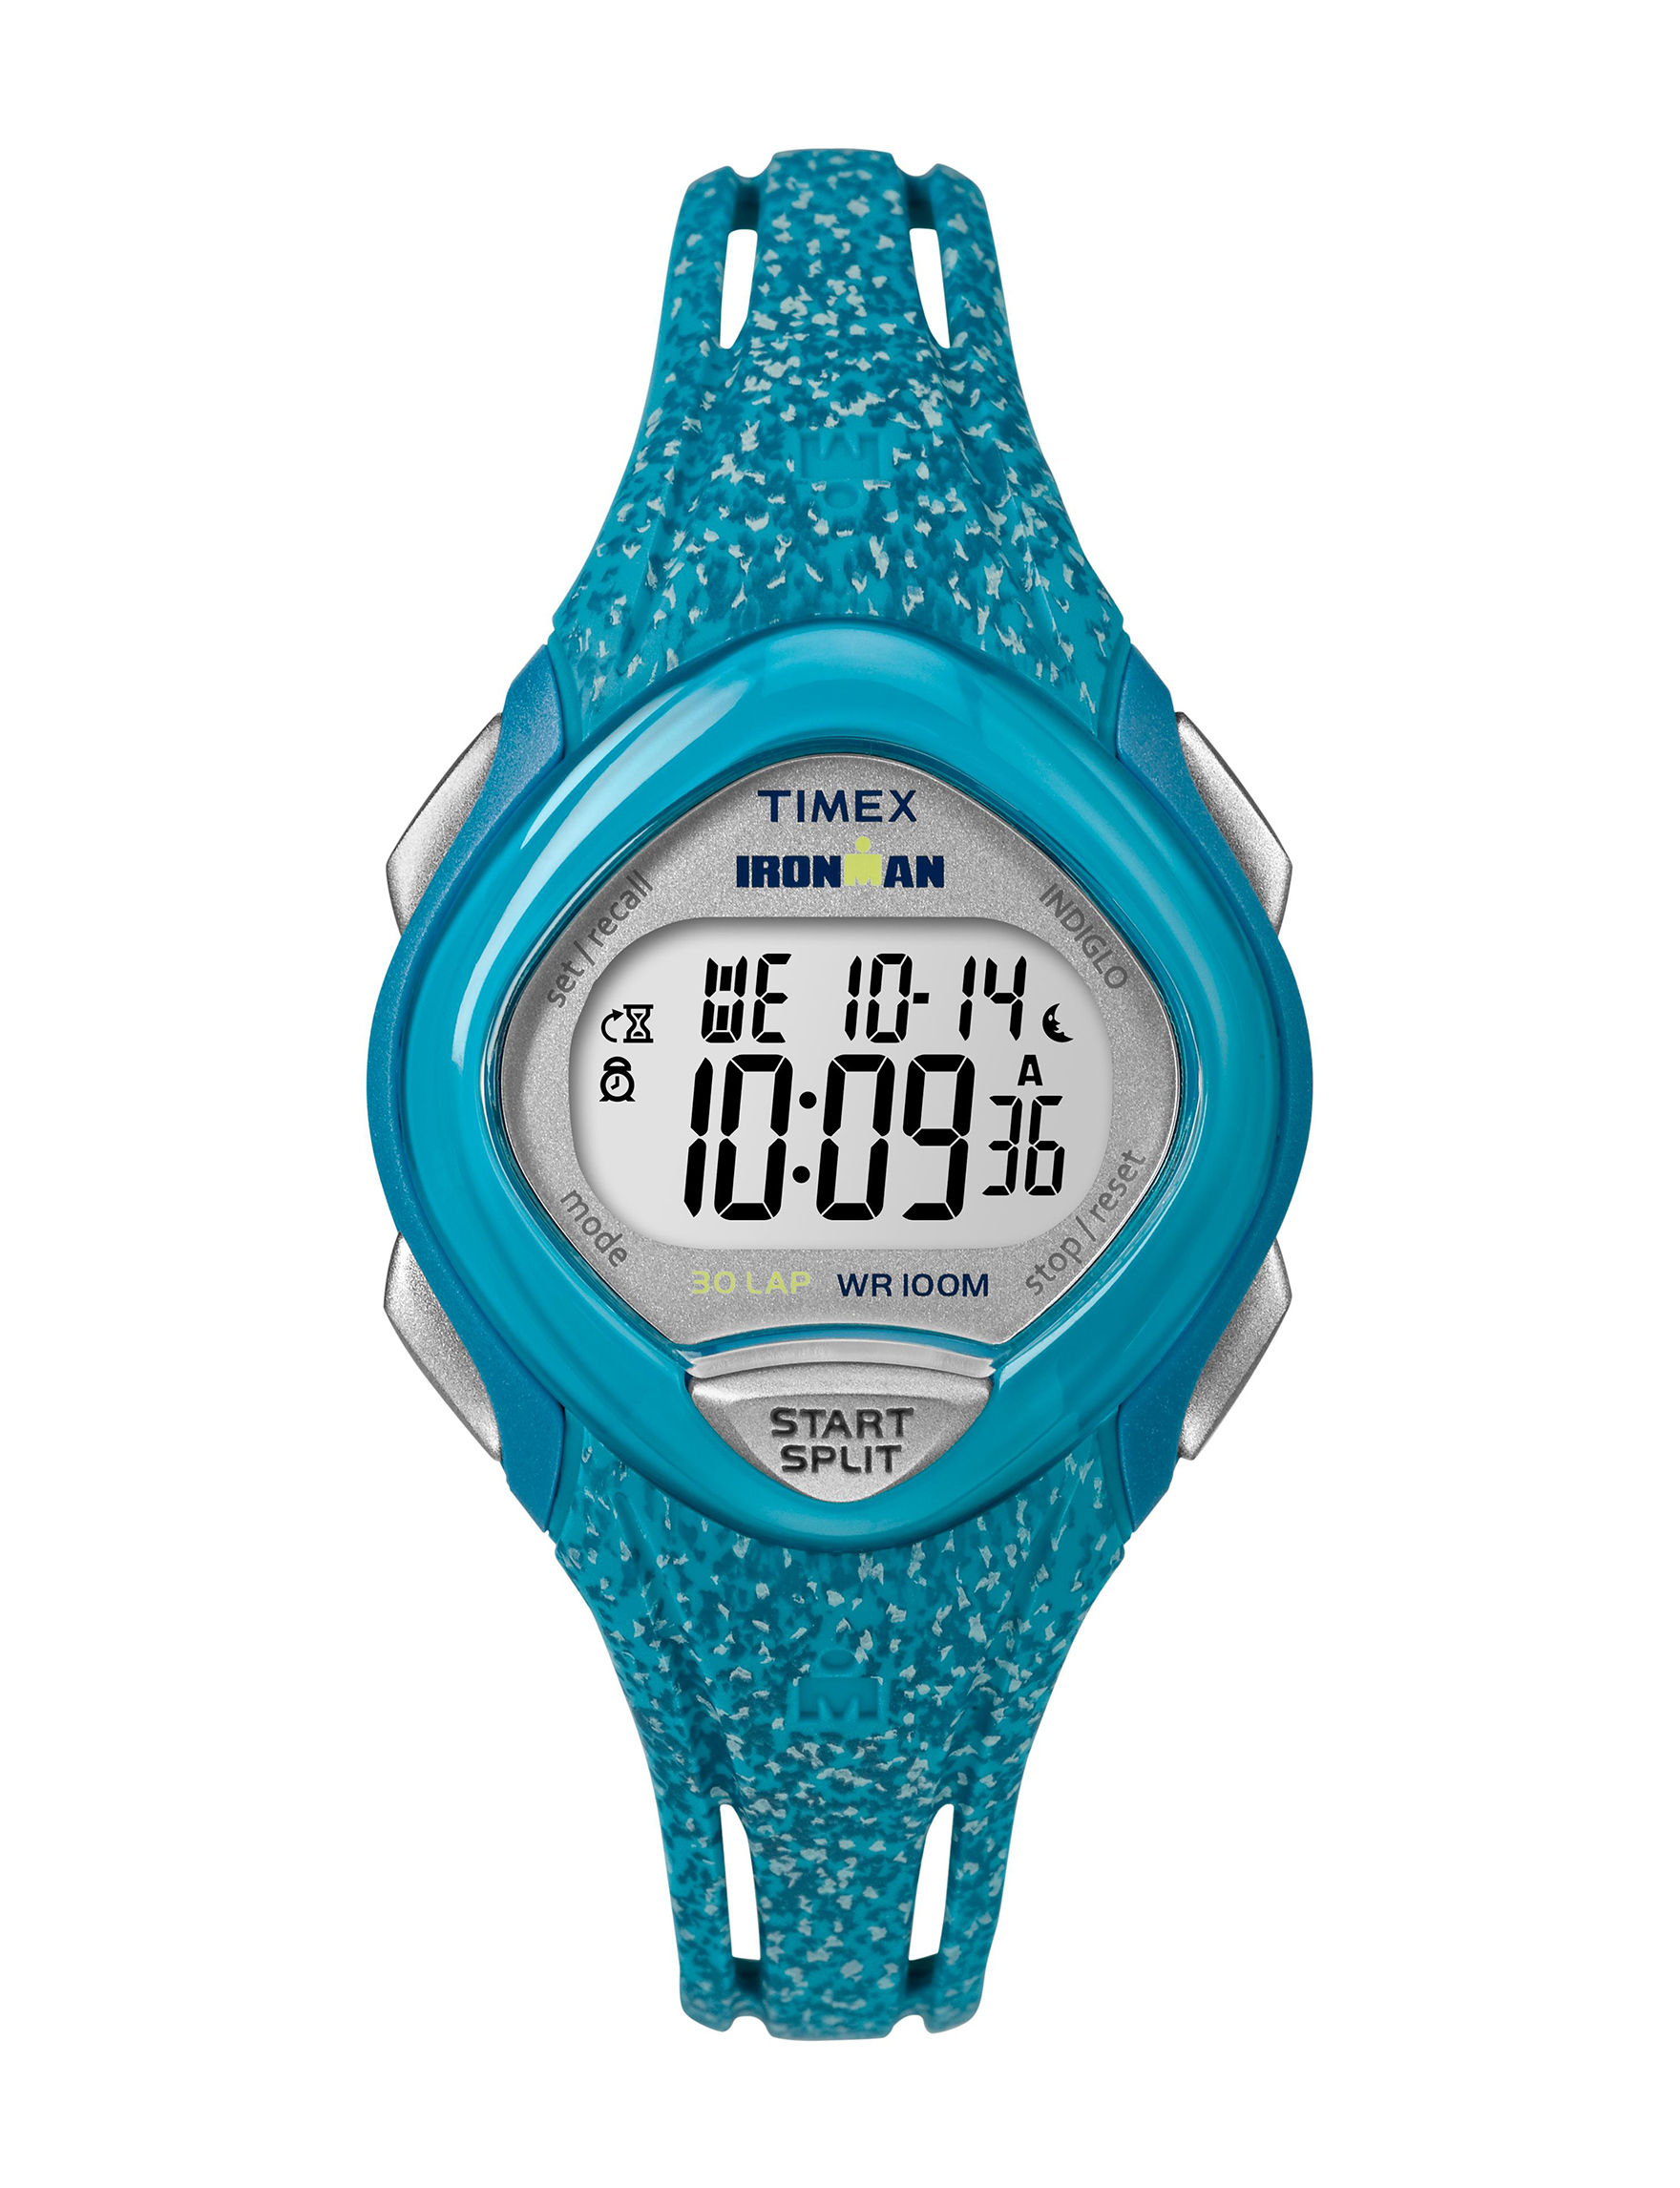 Timex Blue Sport Watches Fitness Tech & Tracking